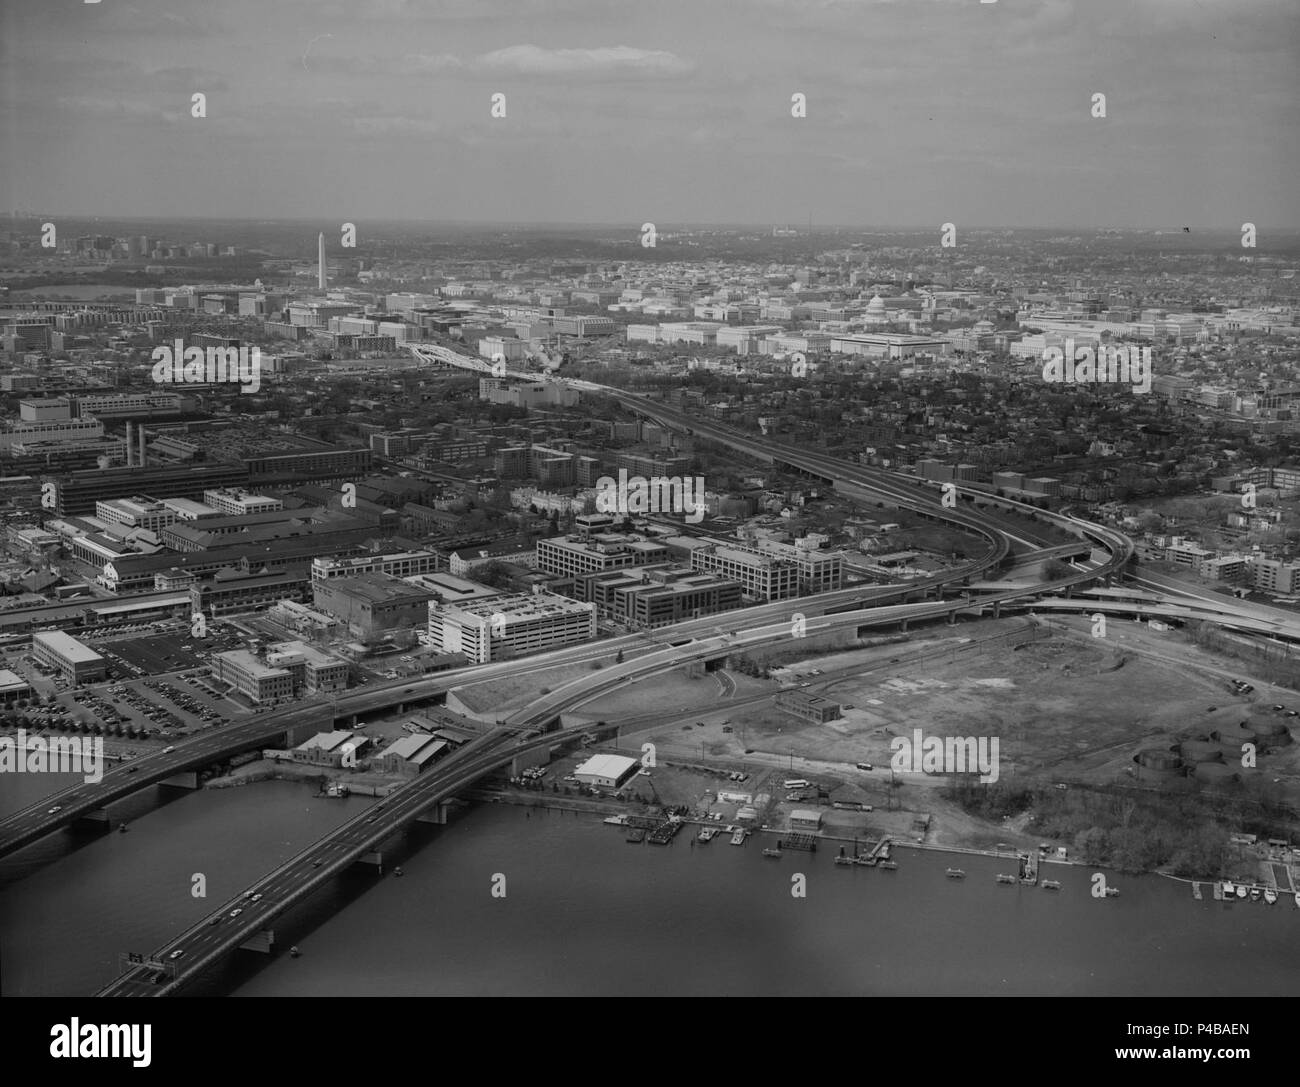 11thstreetbridges 1992. - Stock Image